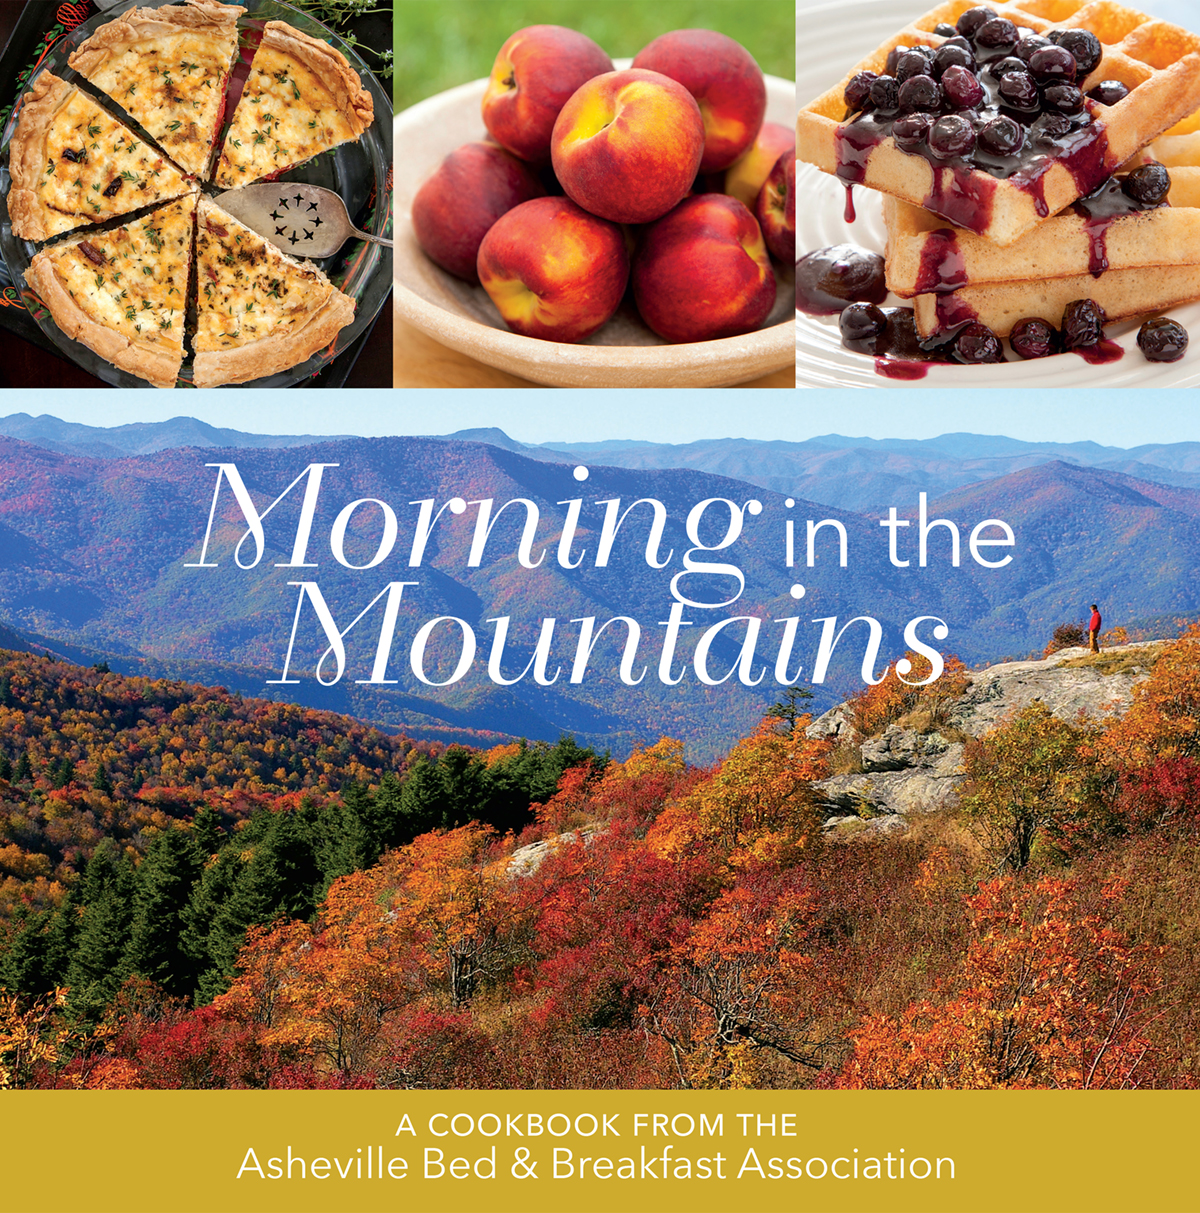 Morning in the Mountains: Local Inns' Recipes